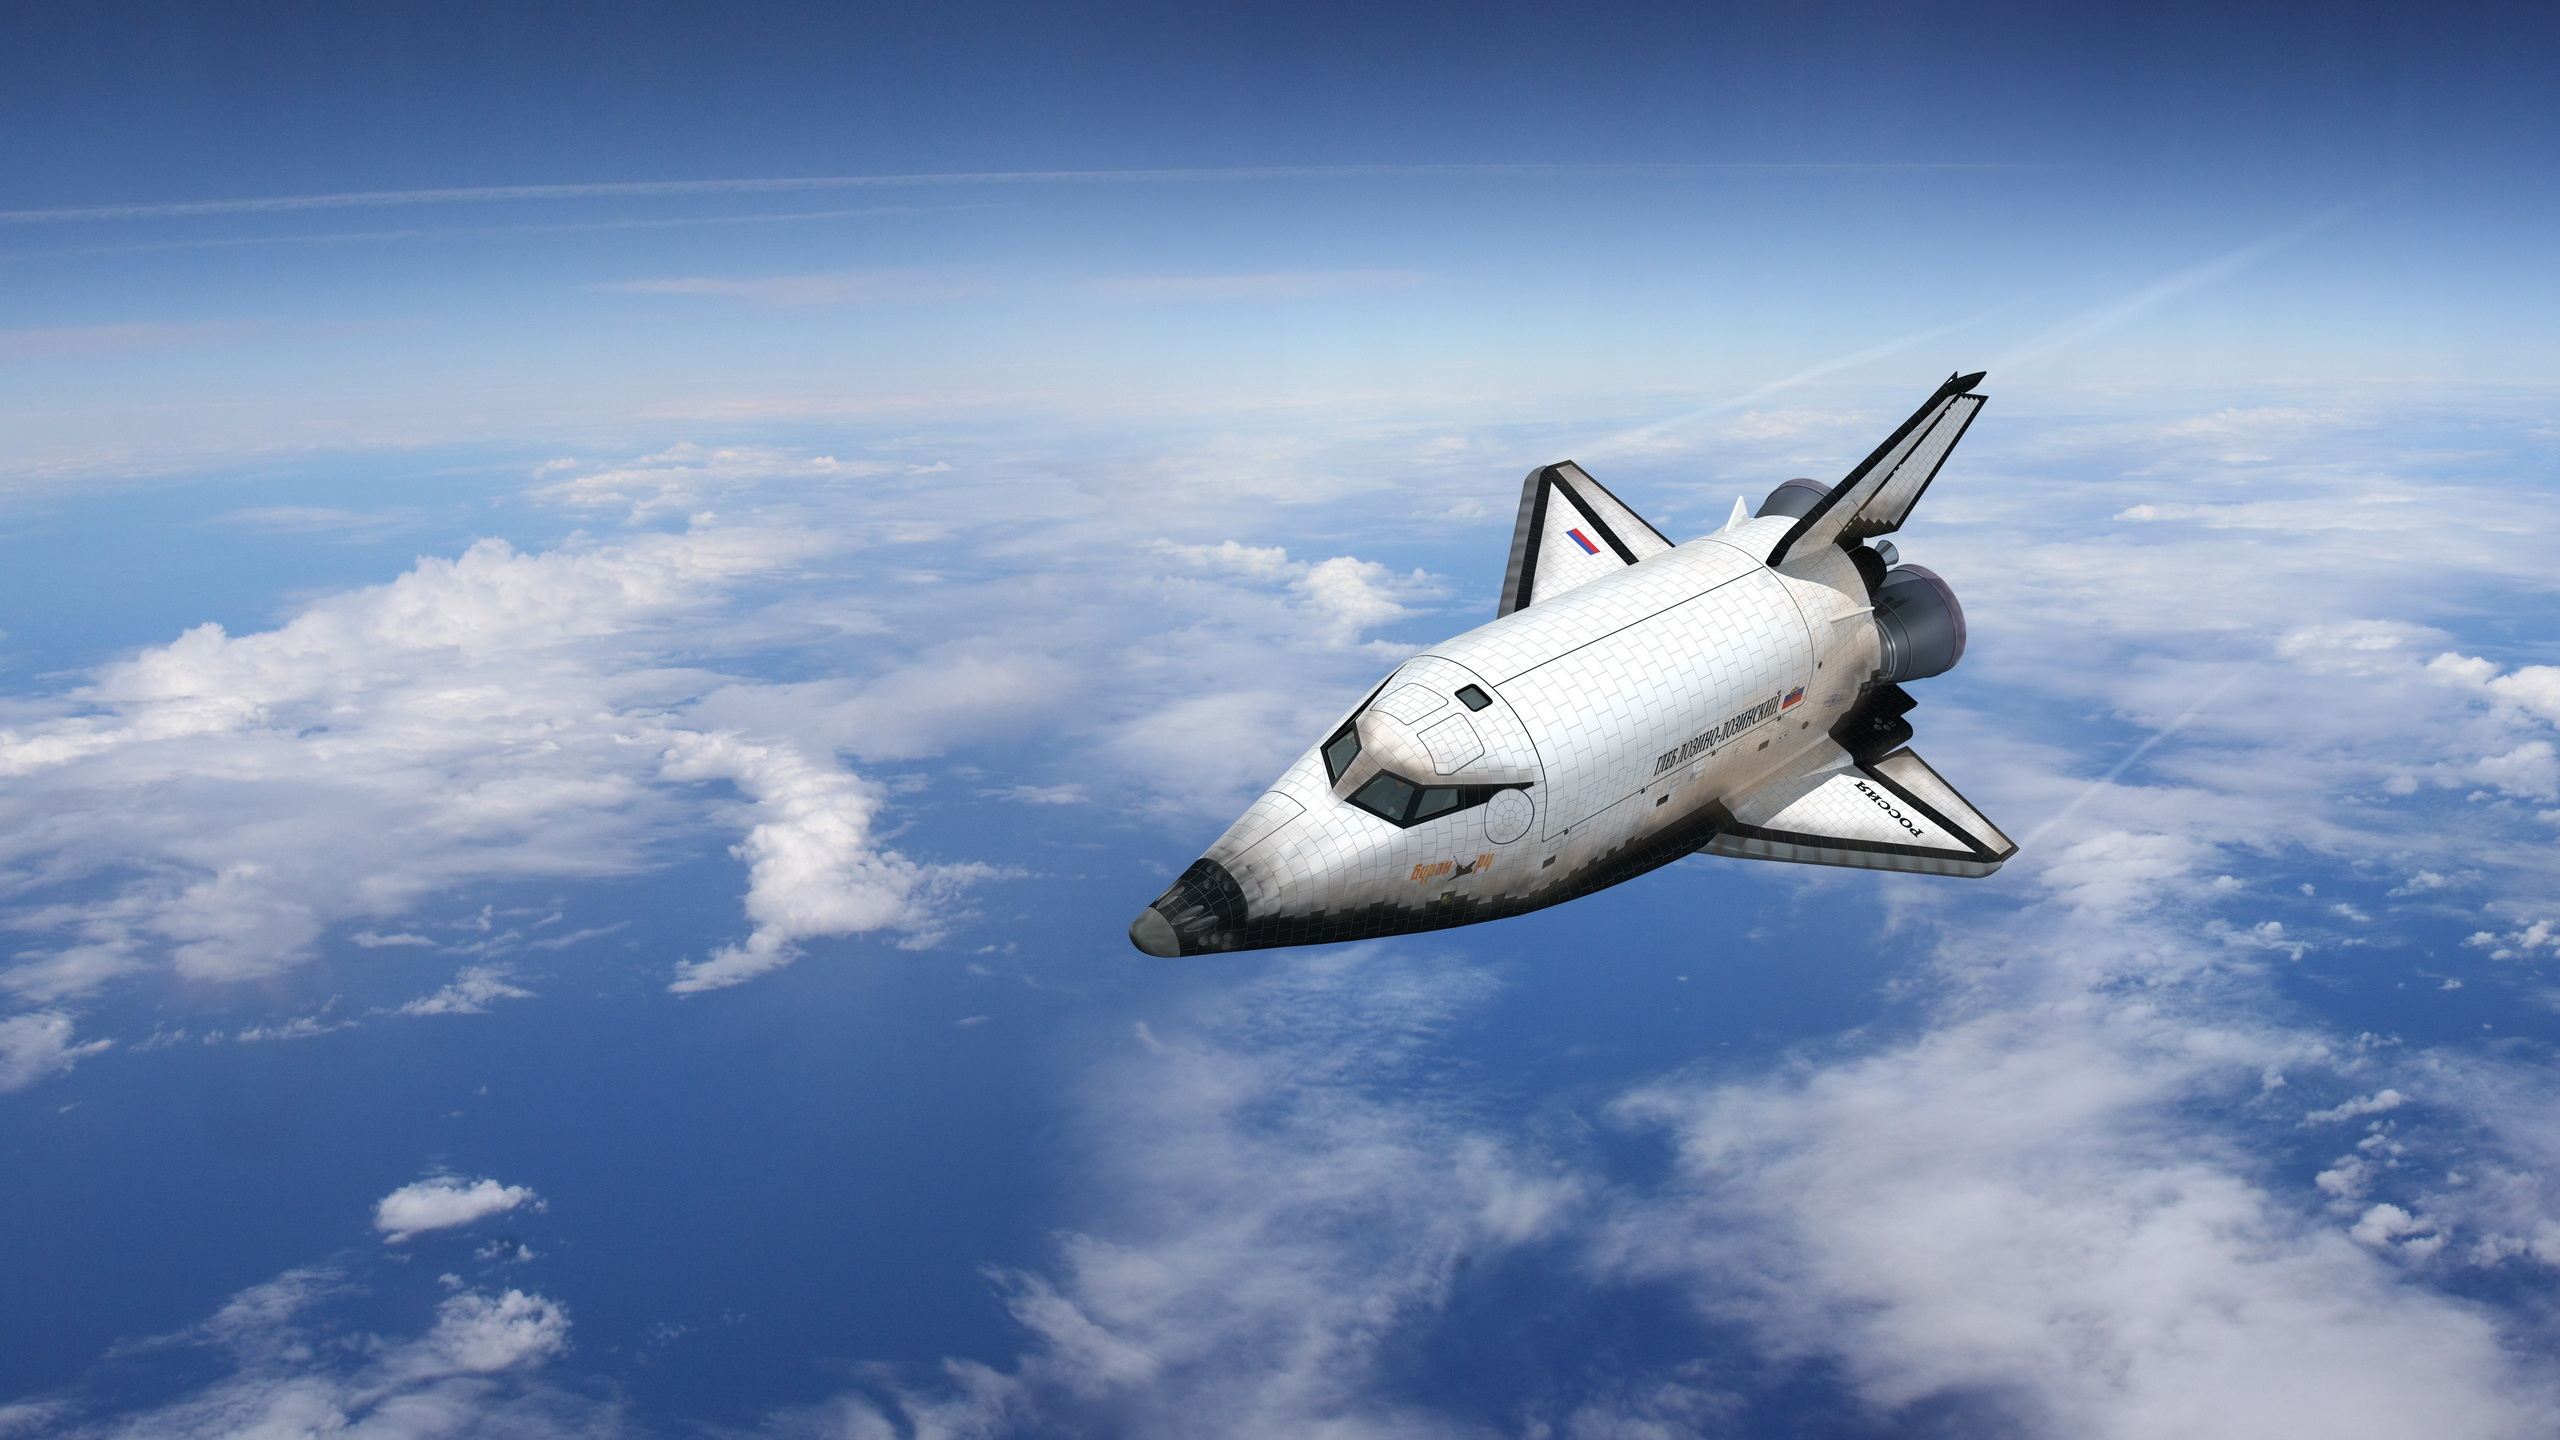 Space shuttle flying over the Earth Wallpaper | 2560x1440 resolution ...